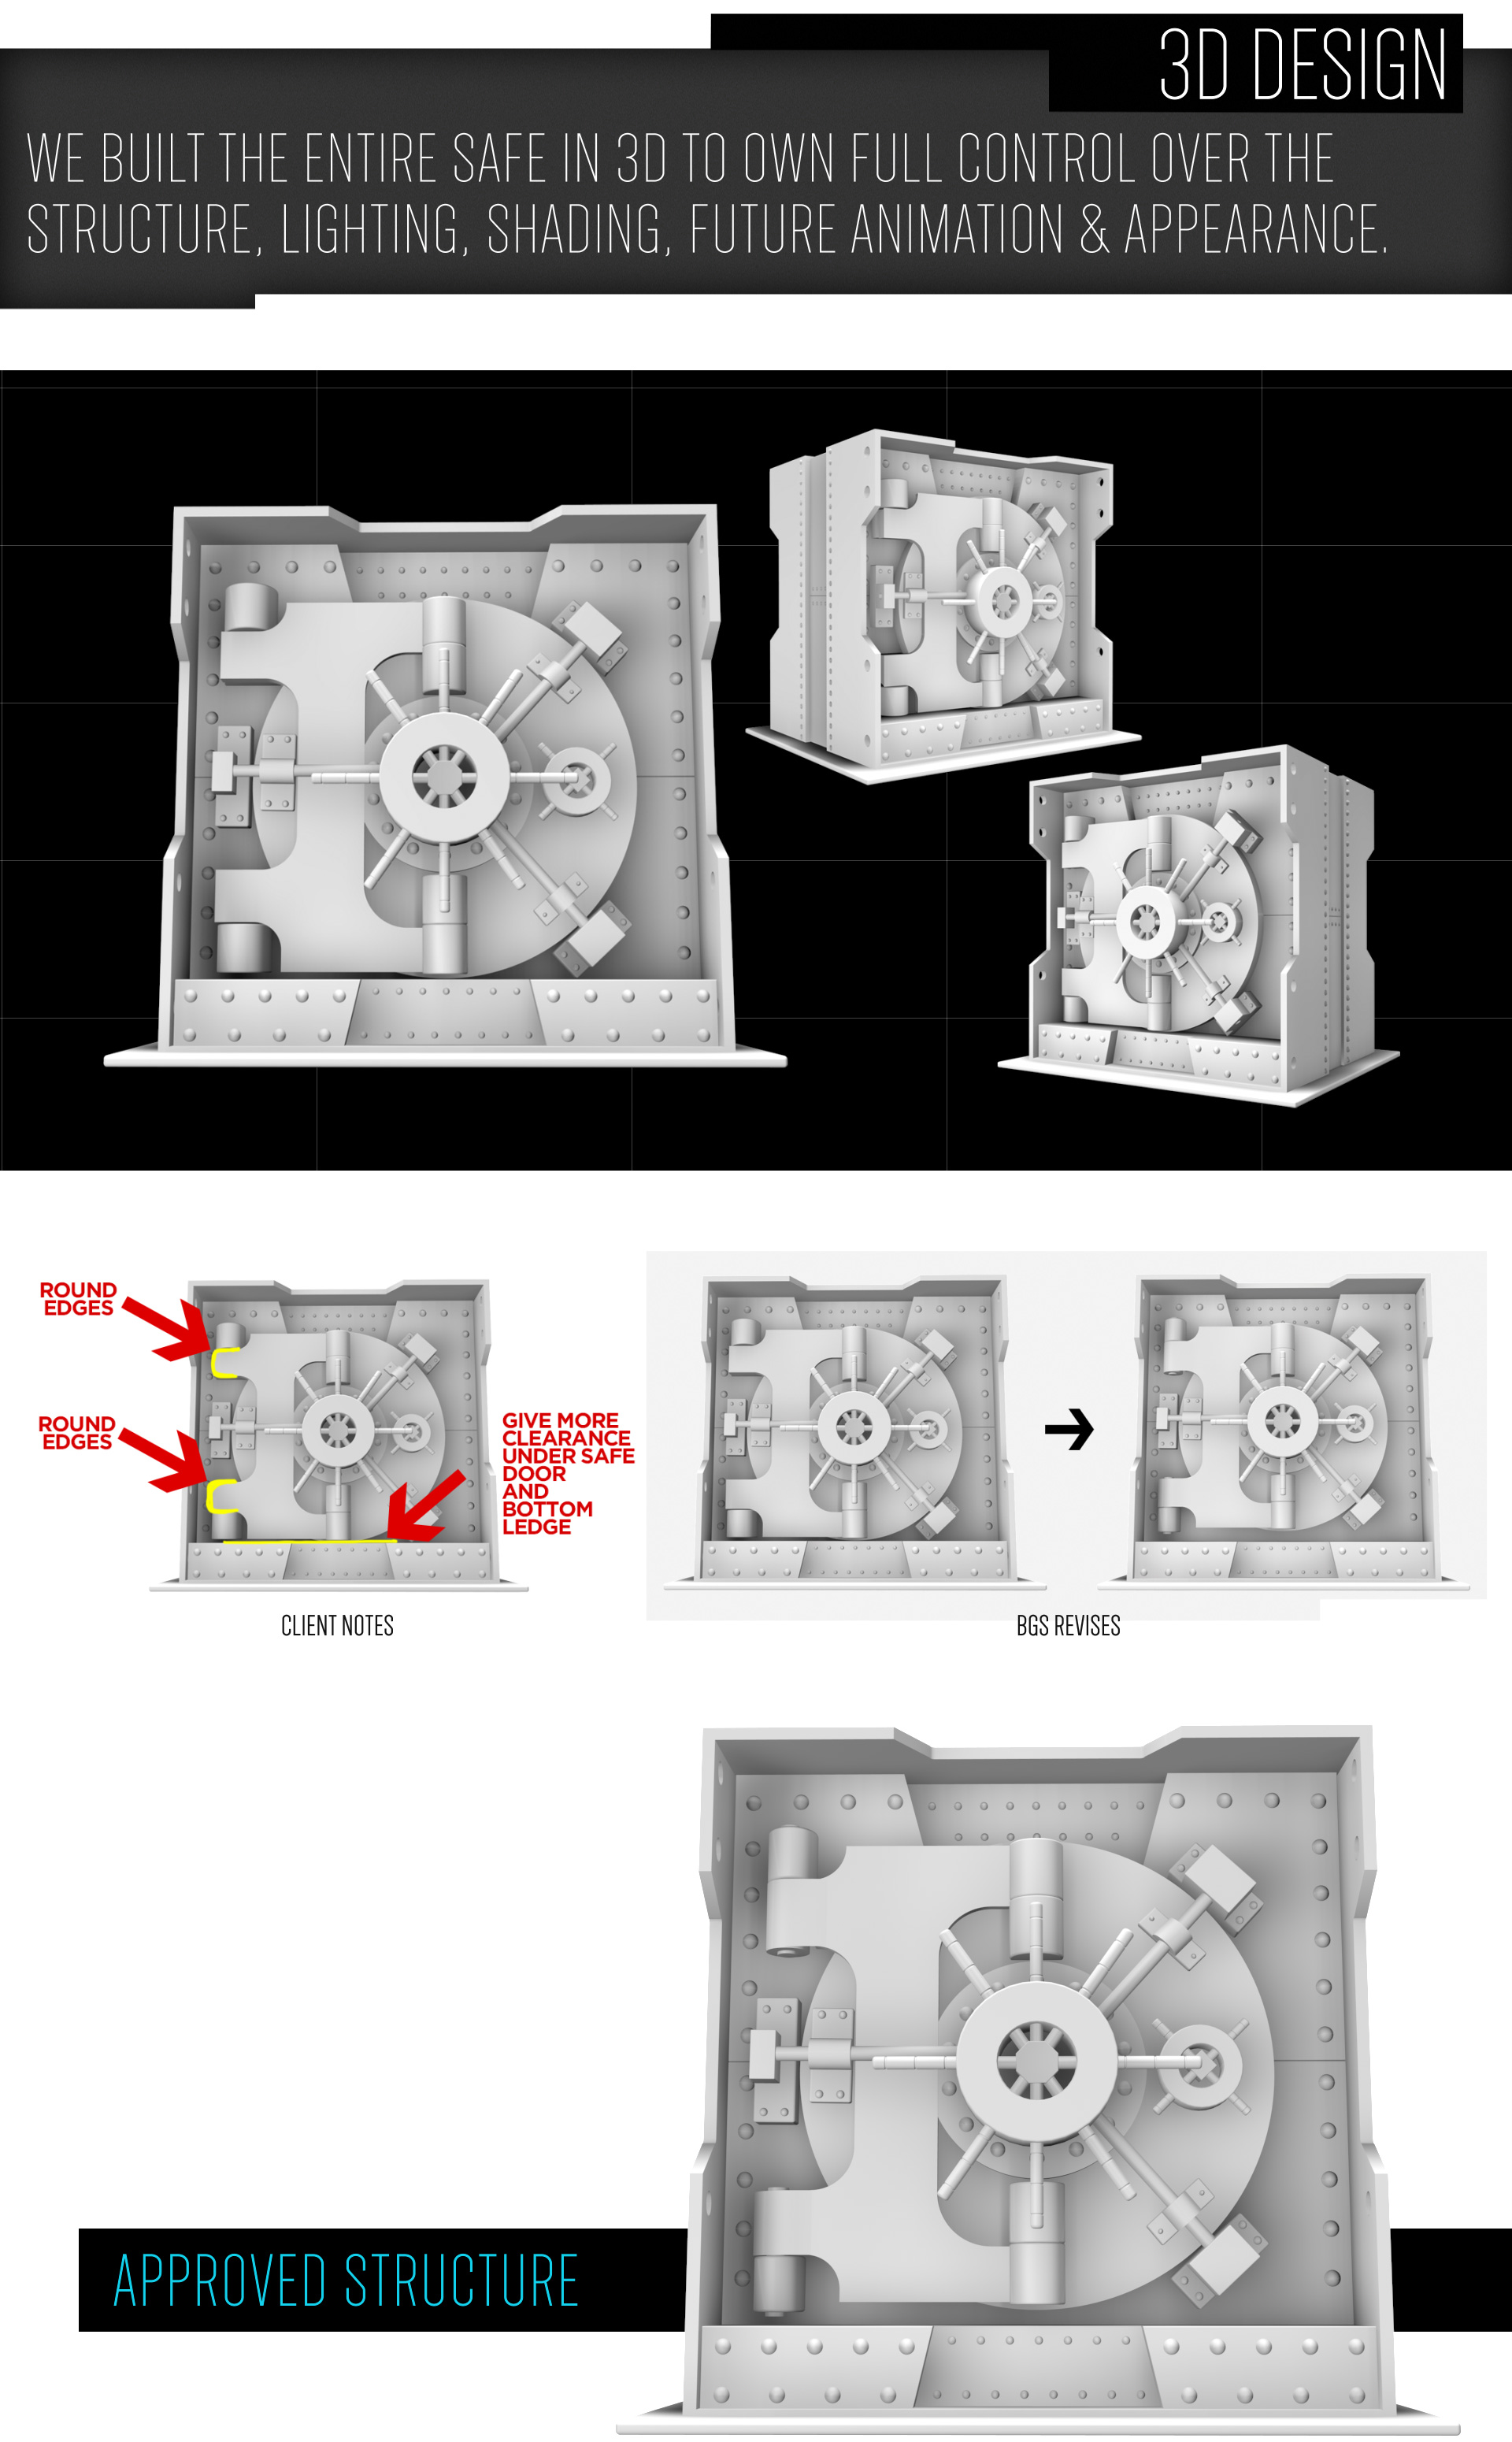 DAVID COPPERFIELD_RED SAFE MASTER PAGE_3D BUILD_00000.jpg